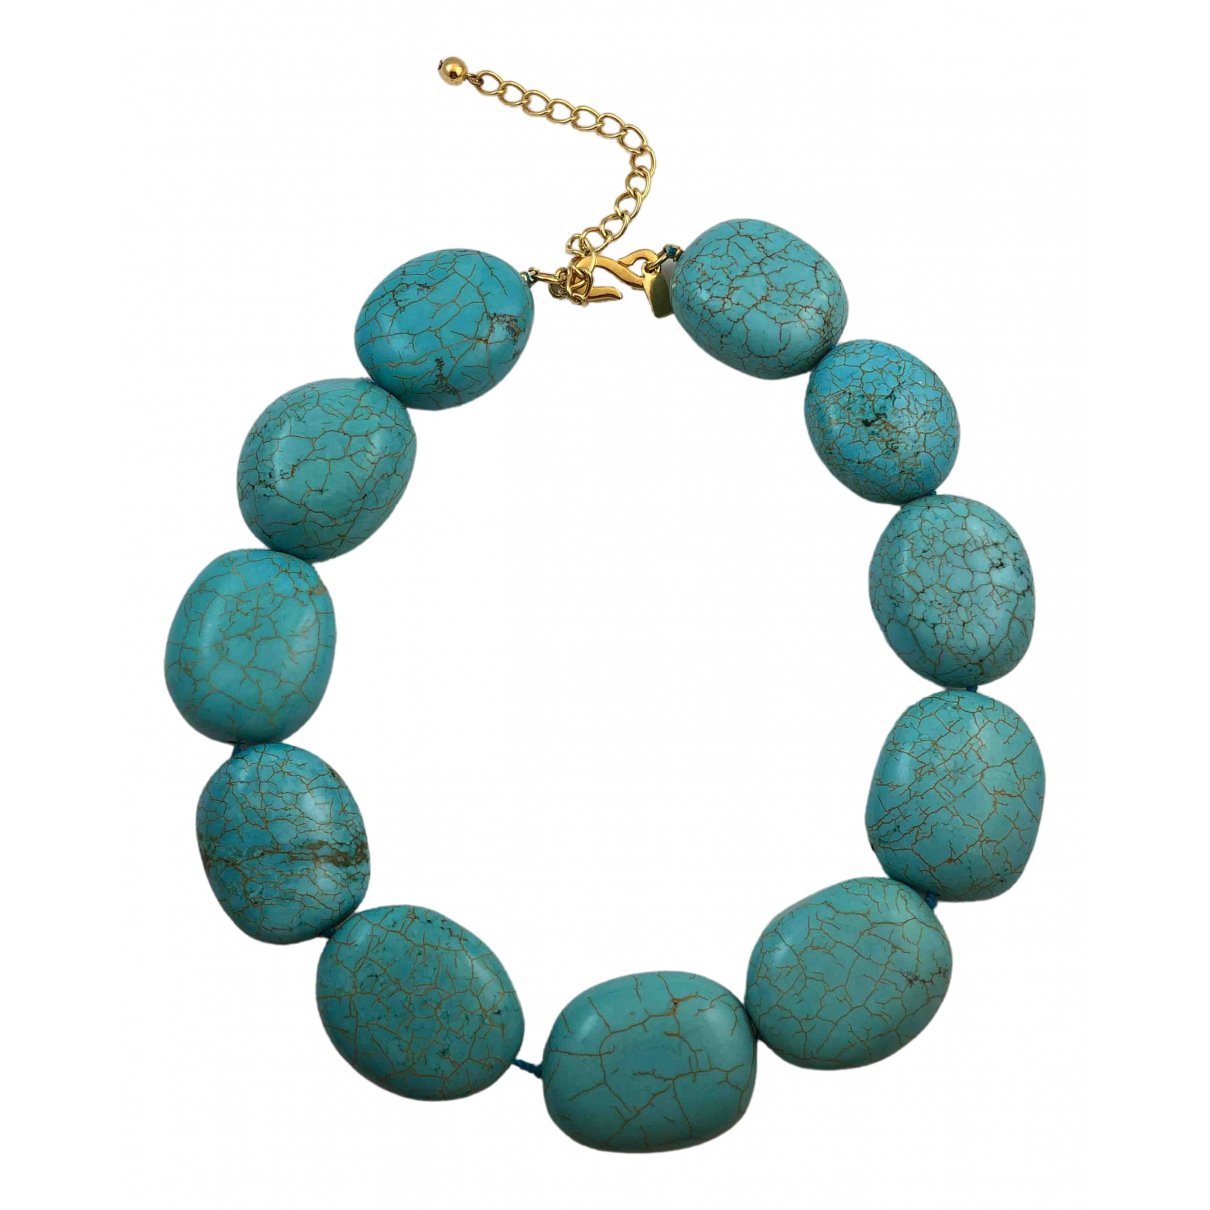 Kenneth Jay Lane \N Turquoise Pearls necklace for Women \N